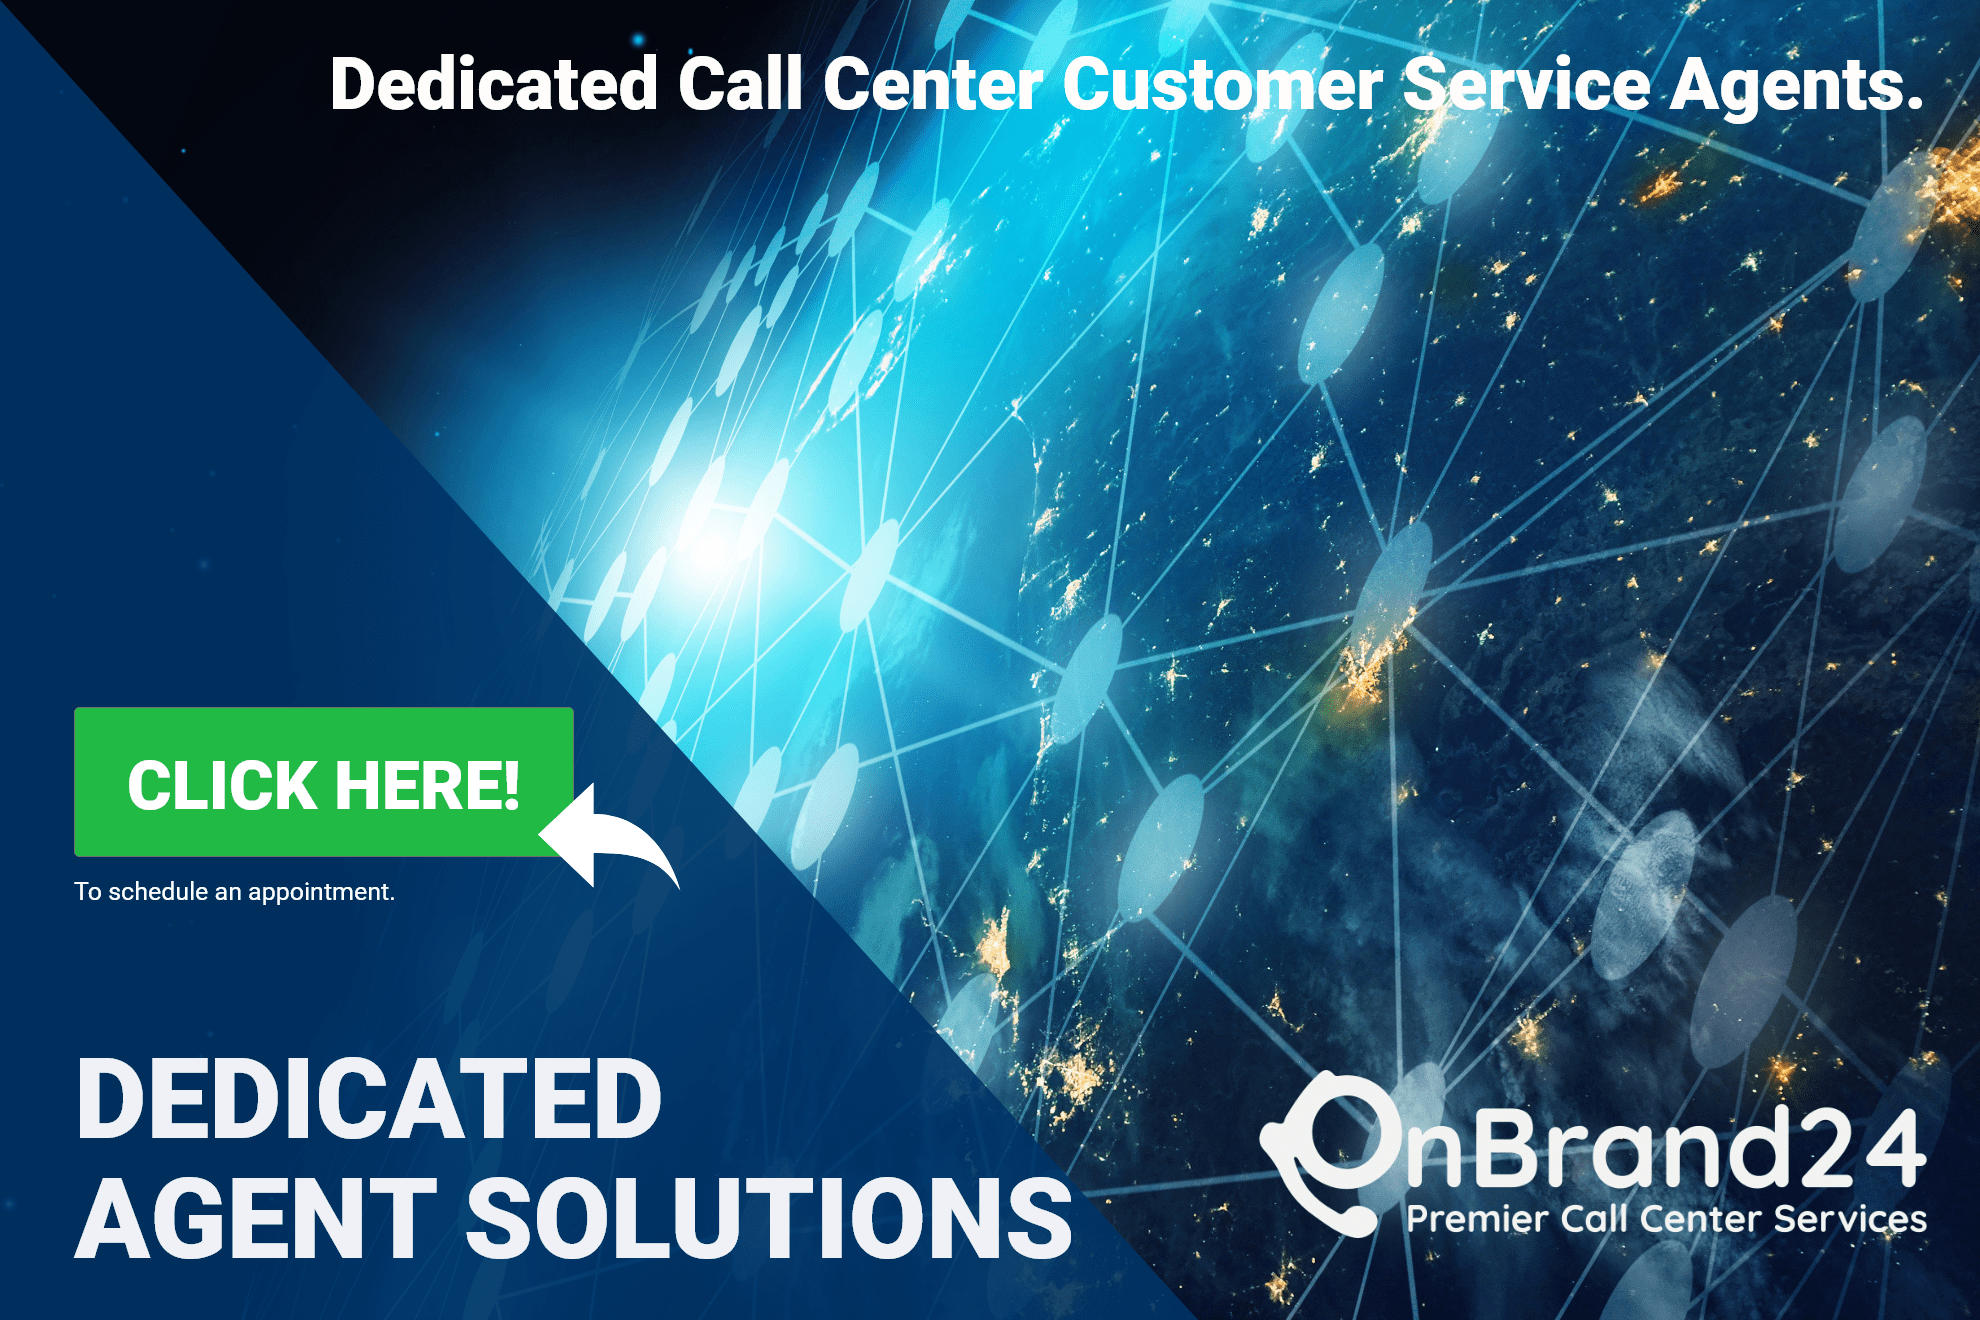 Dedicated Call Center Customer Service Agents with OnBrand24